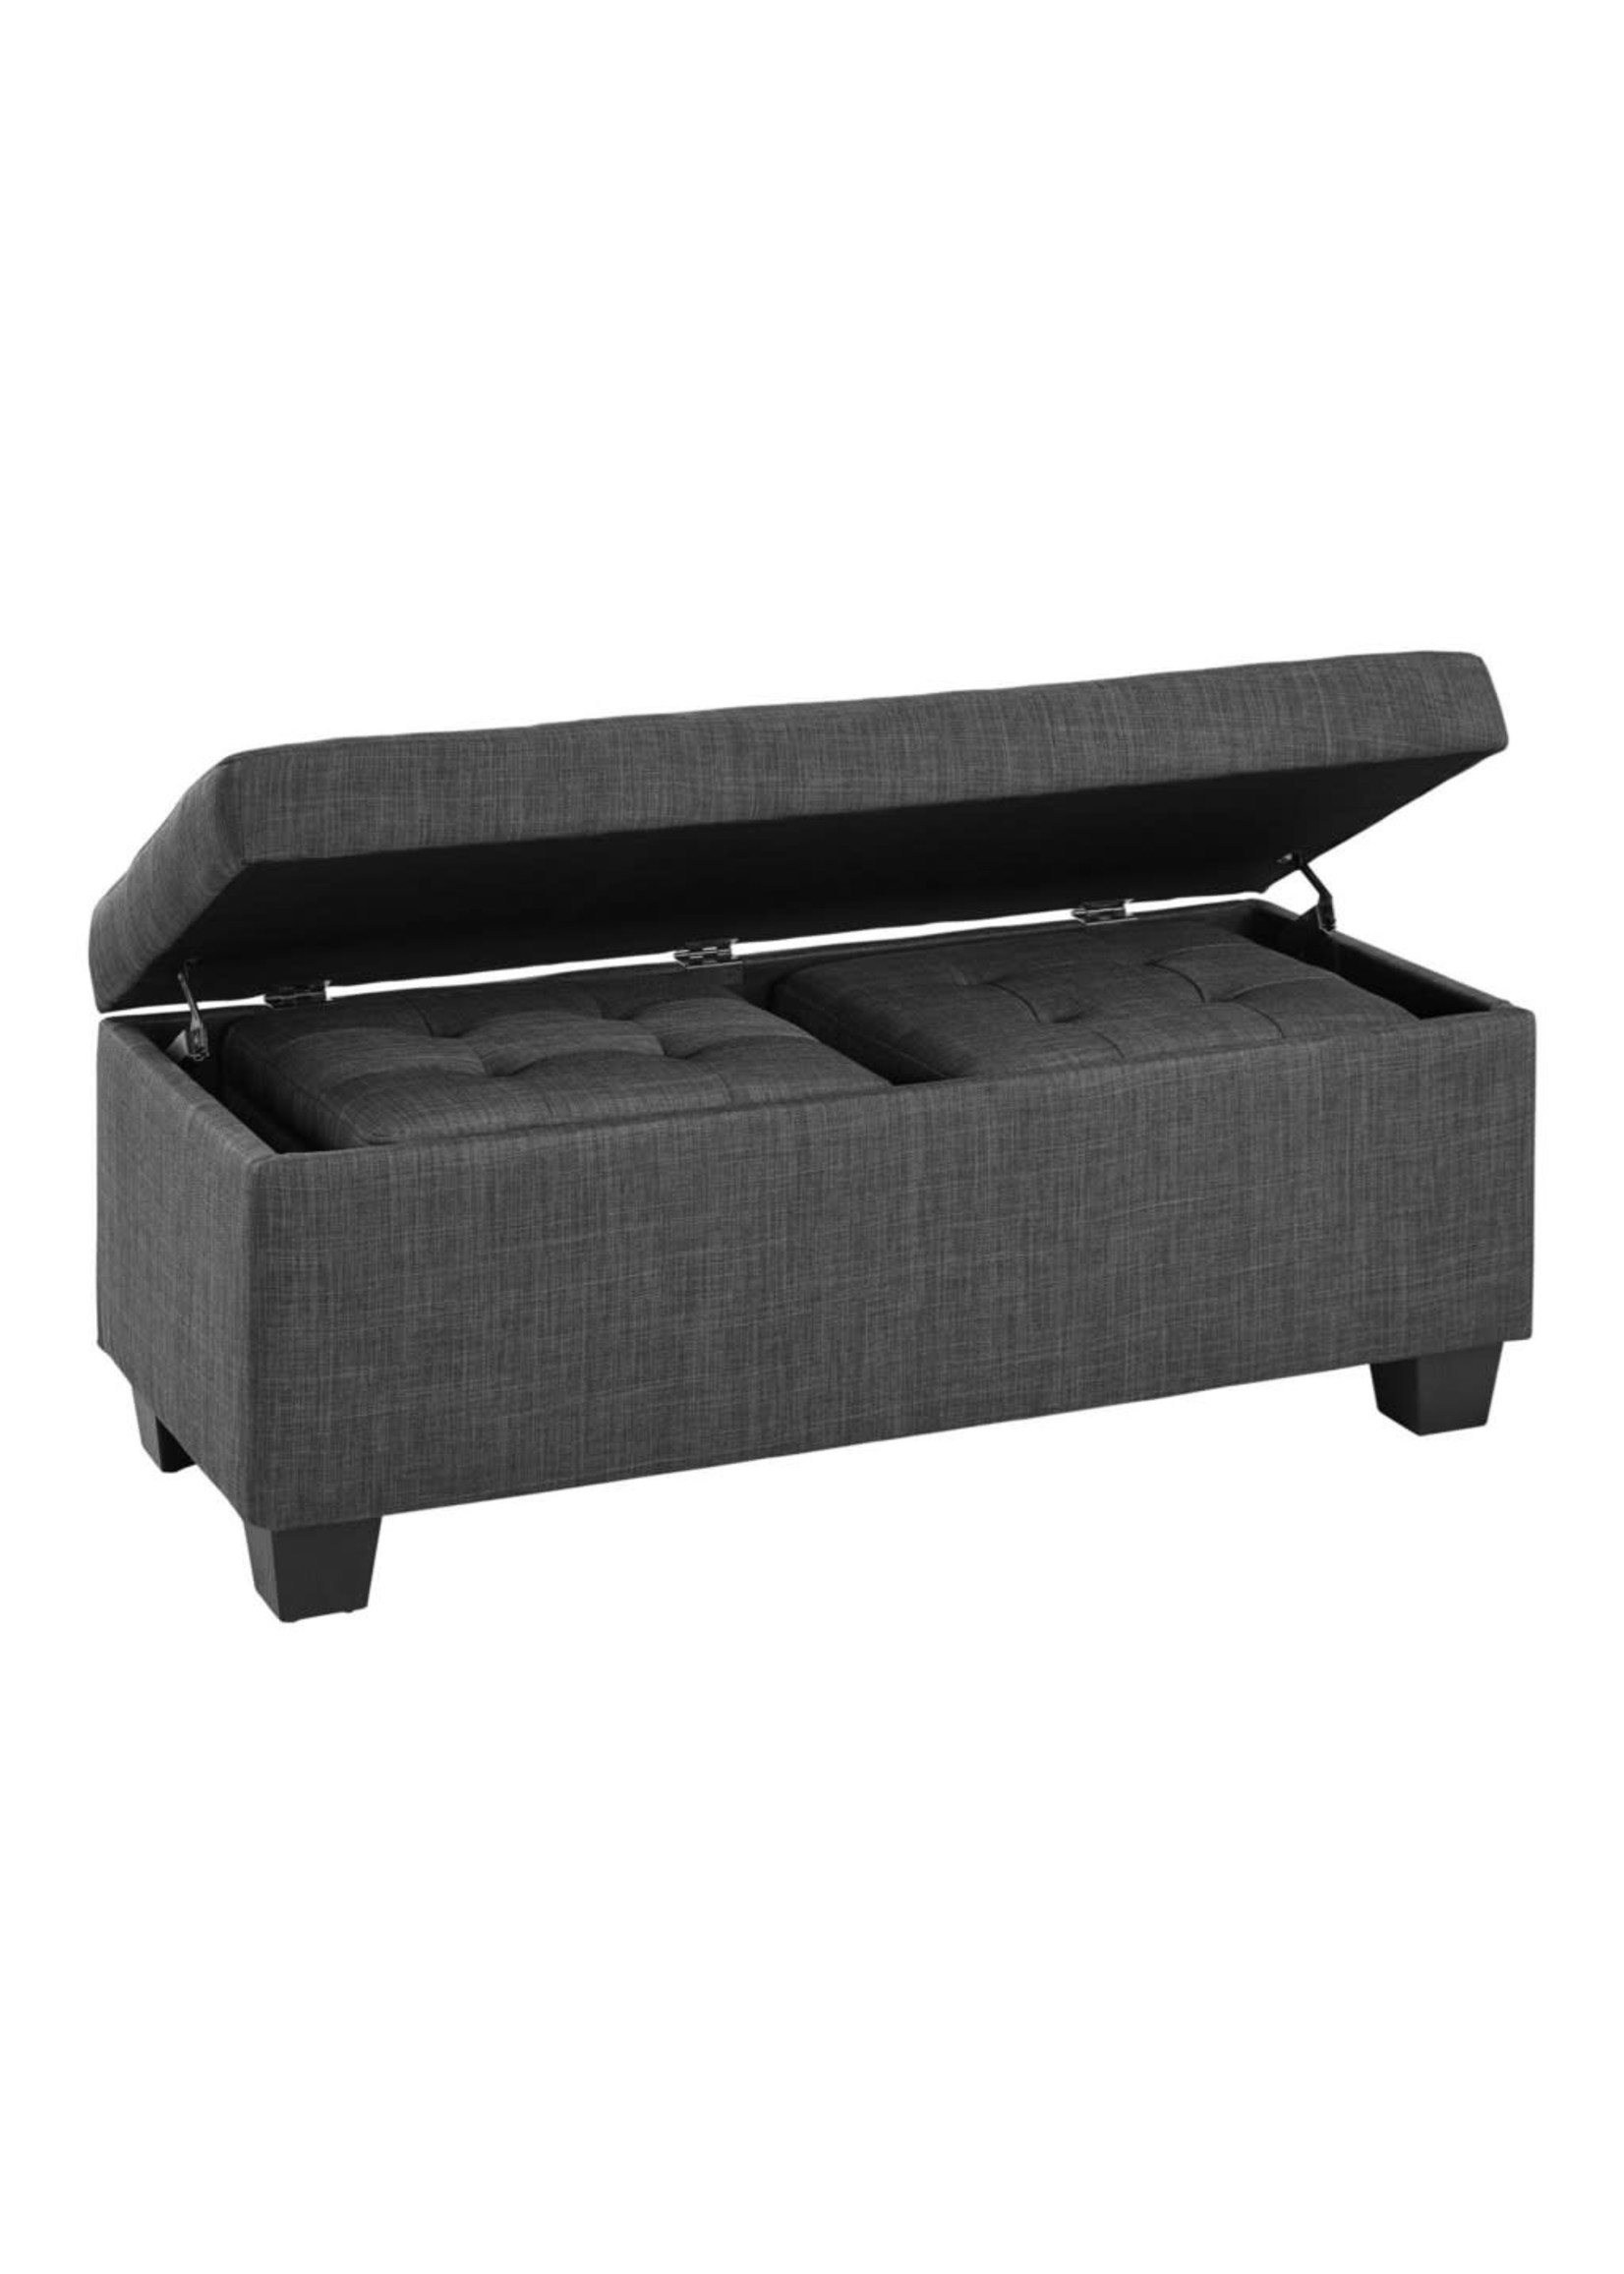 ELEMENTS ETHAN 3PC STORAGE BENCH & OTTOMAN SET HEIRLOOM CHARCOAL